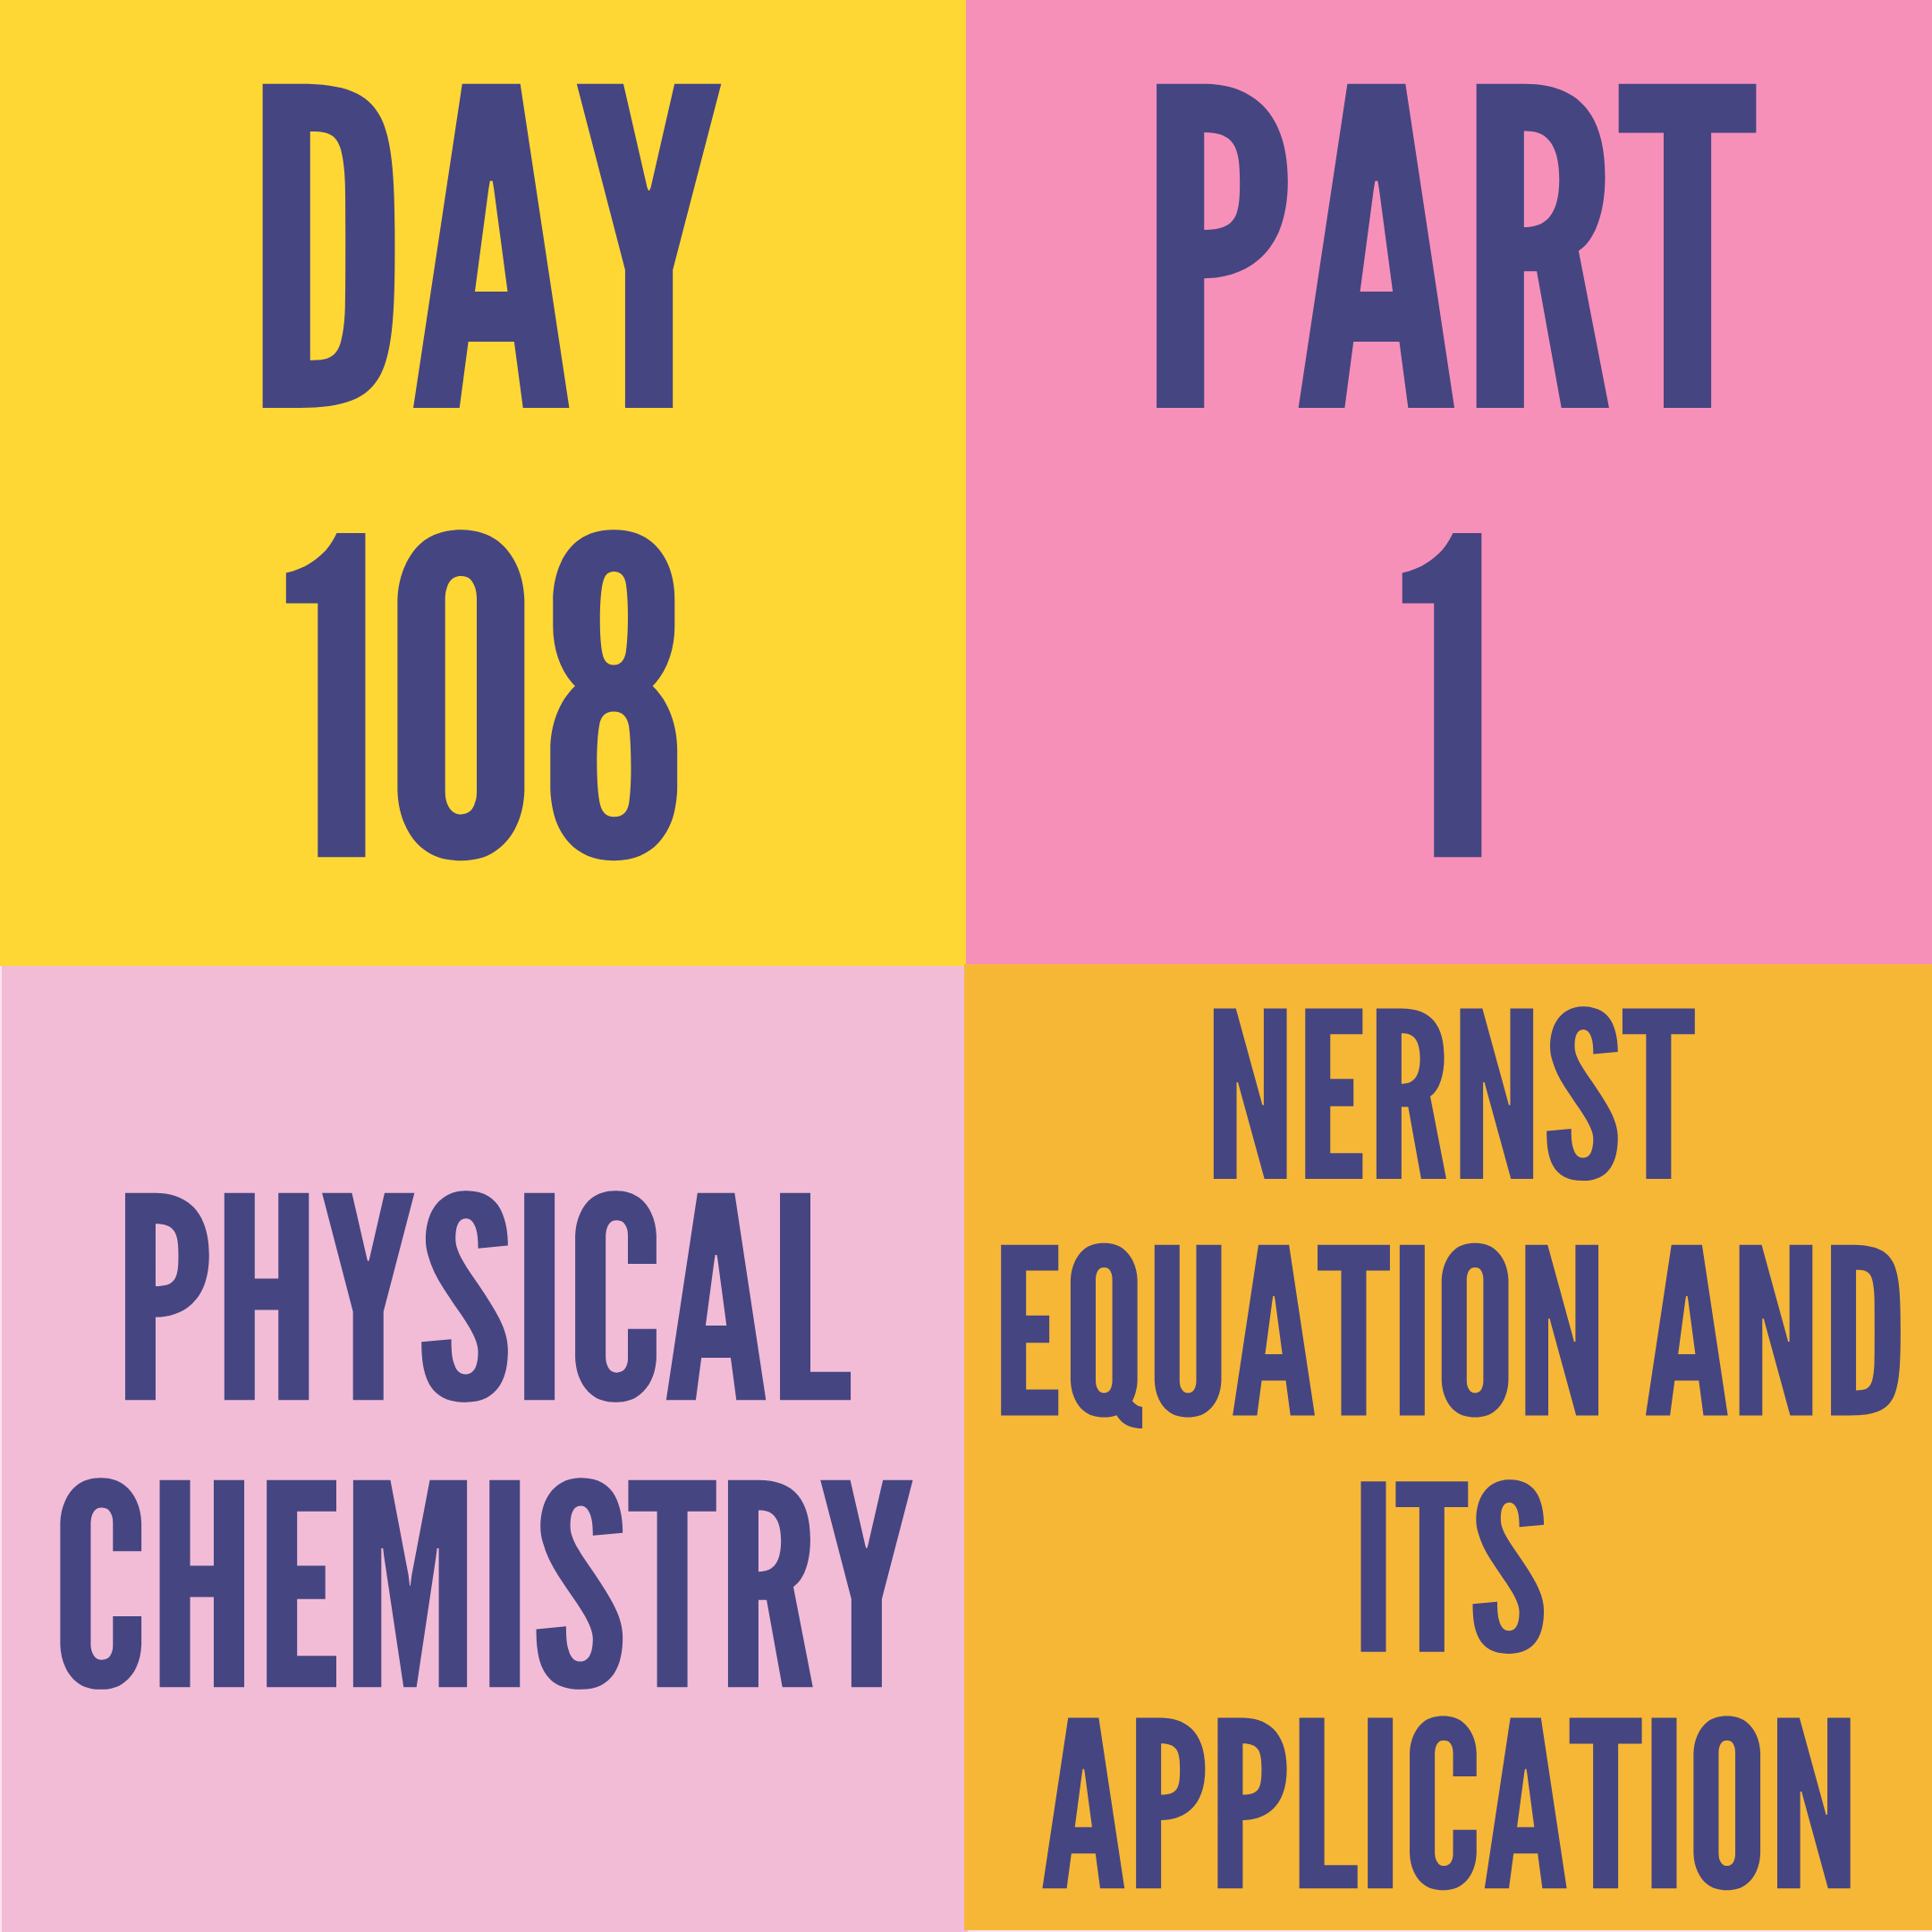 DAY-180 PART-1 NERNST EQUATION AND ITS APPLICATION